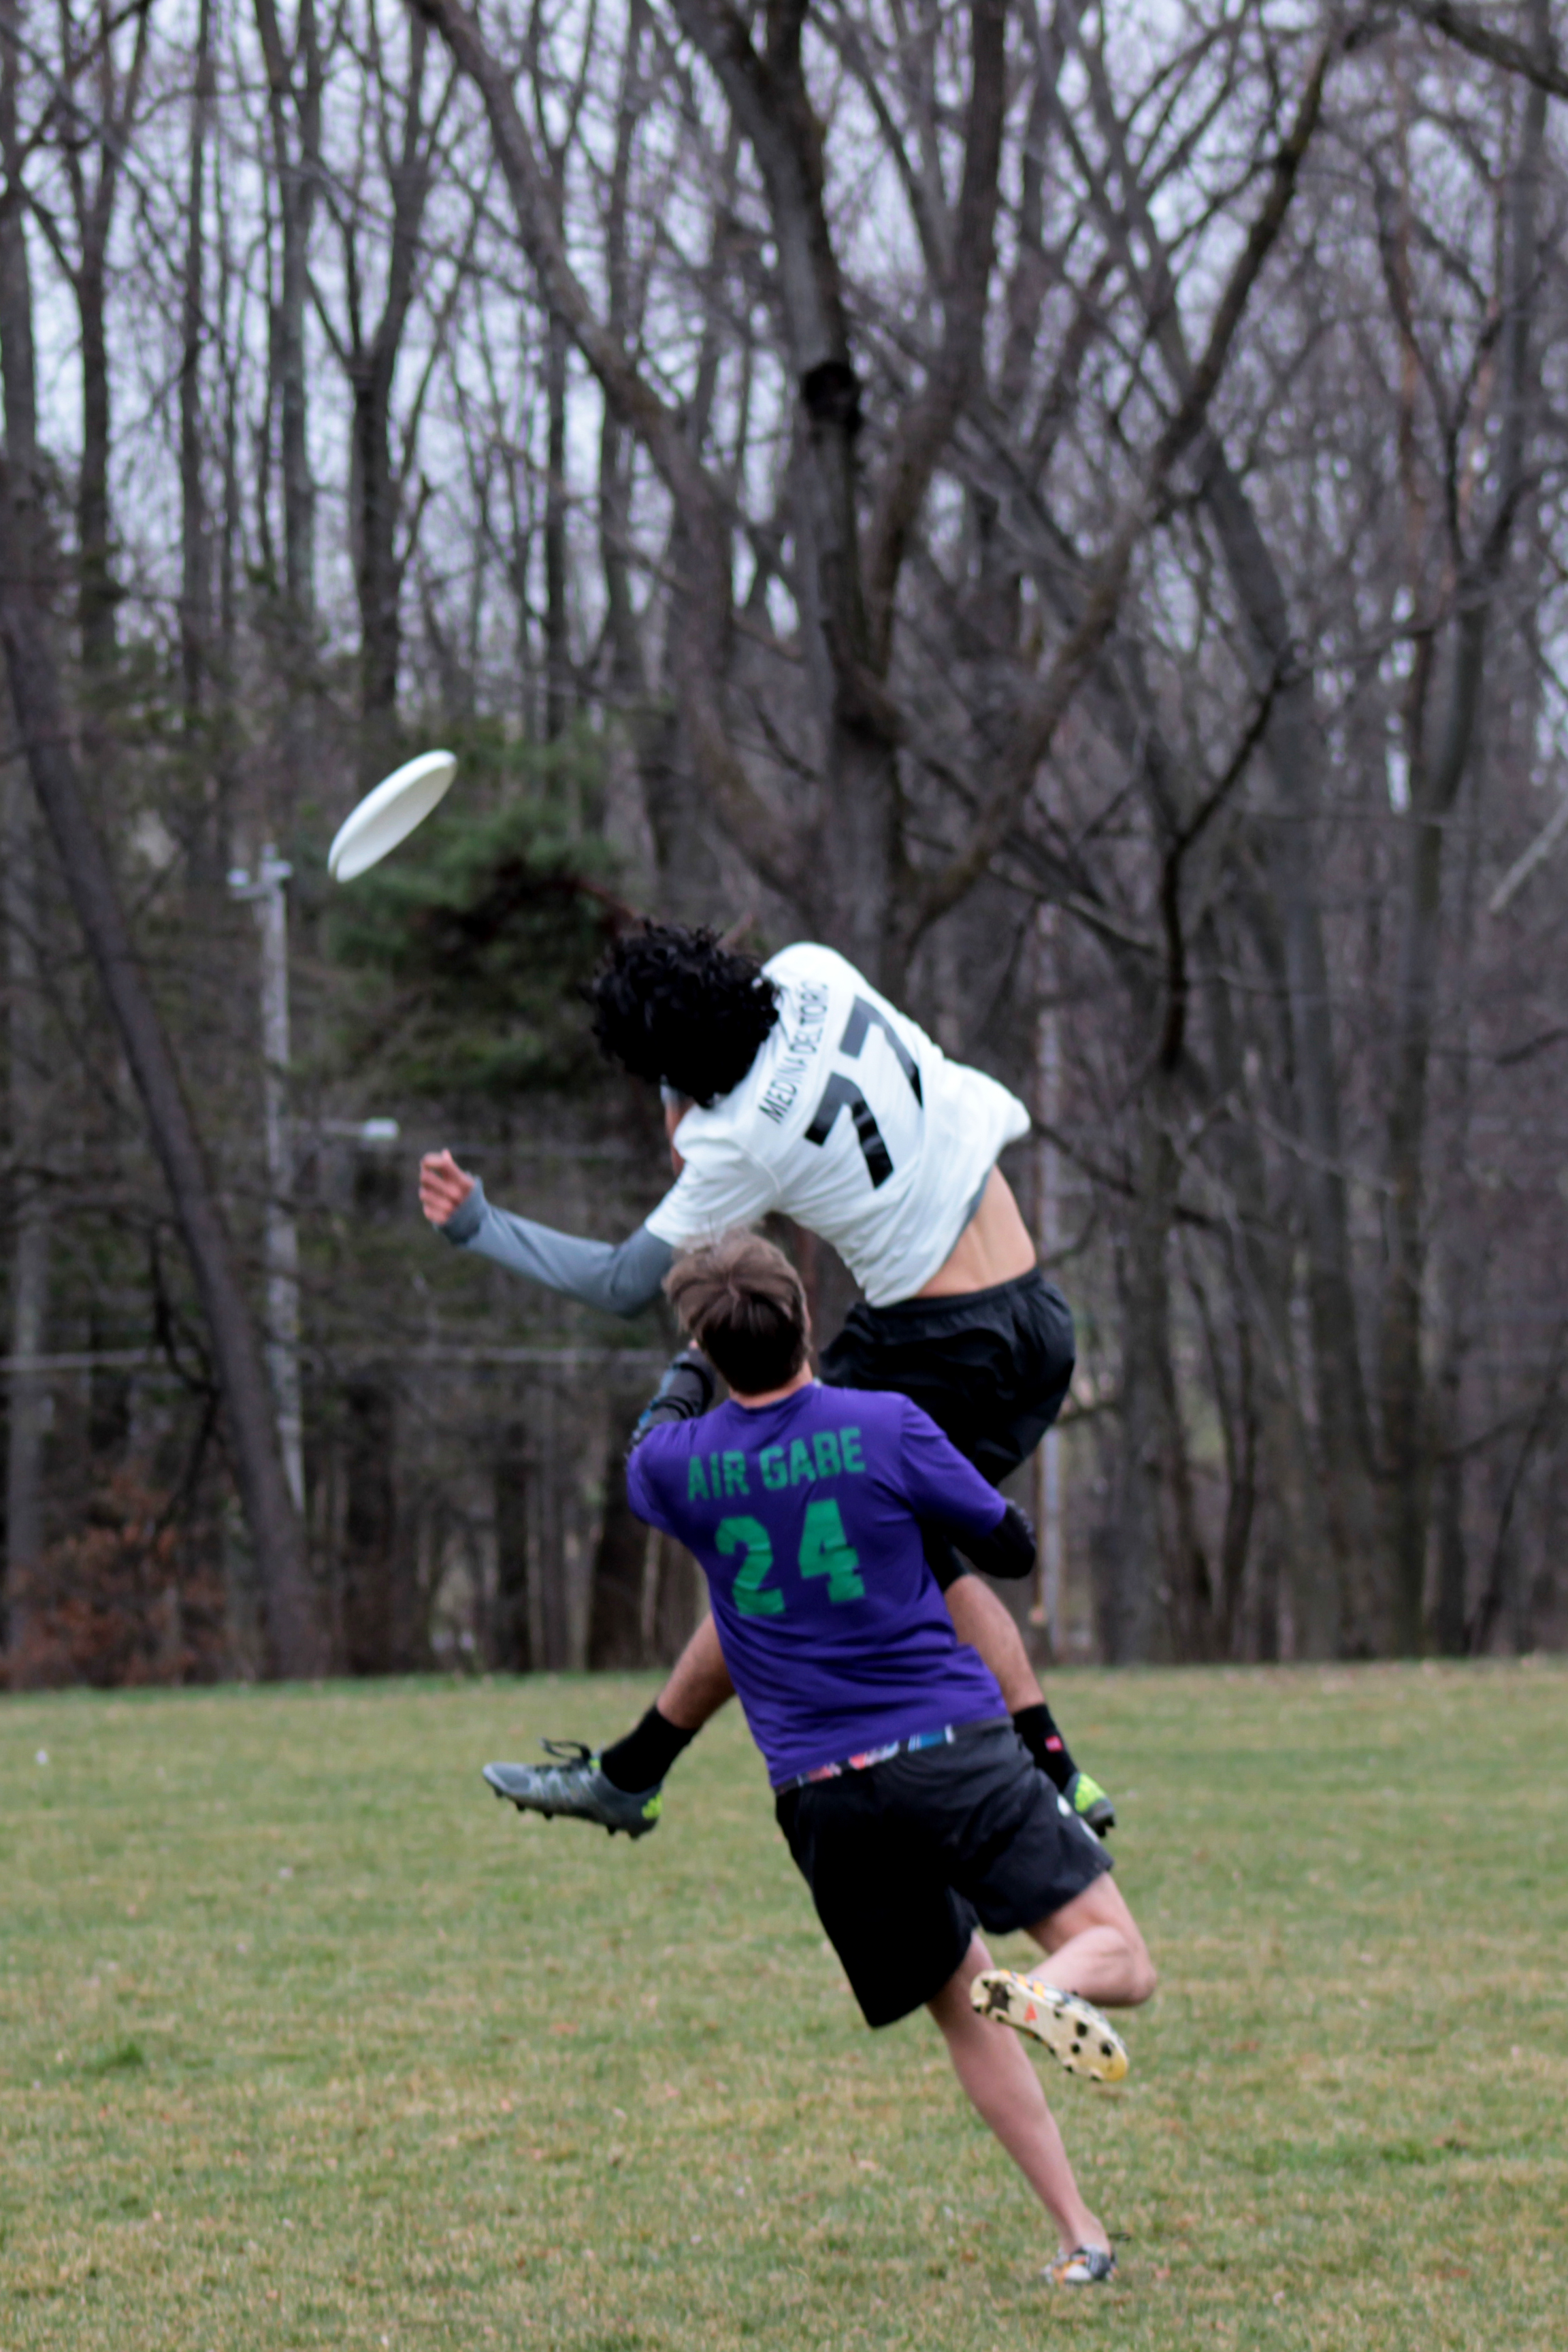 An impressive jump catch by Victor Median Del Toro '17